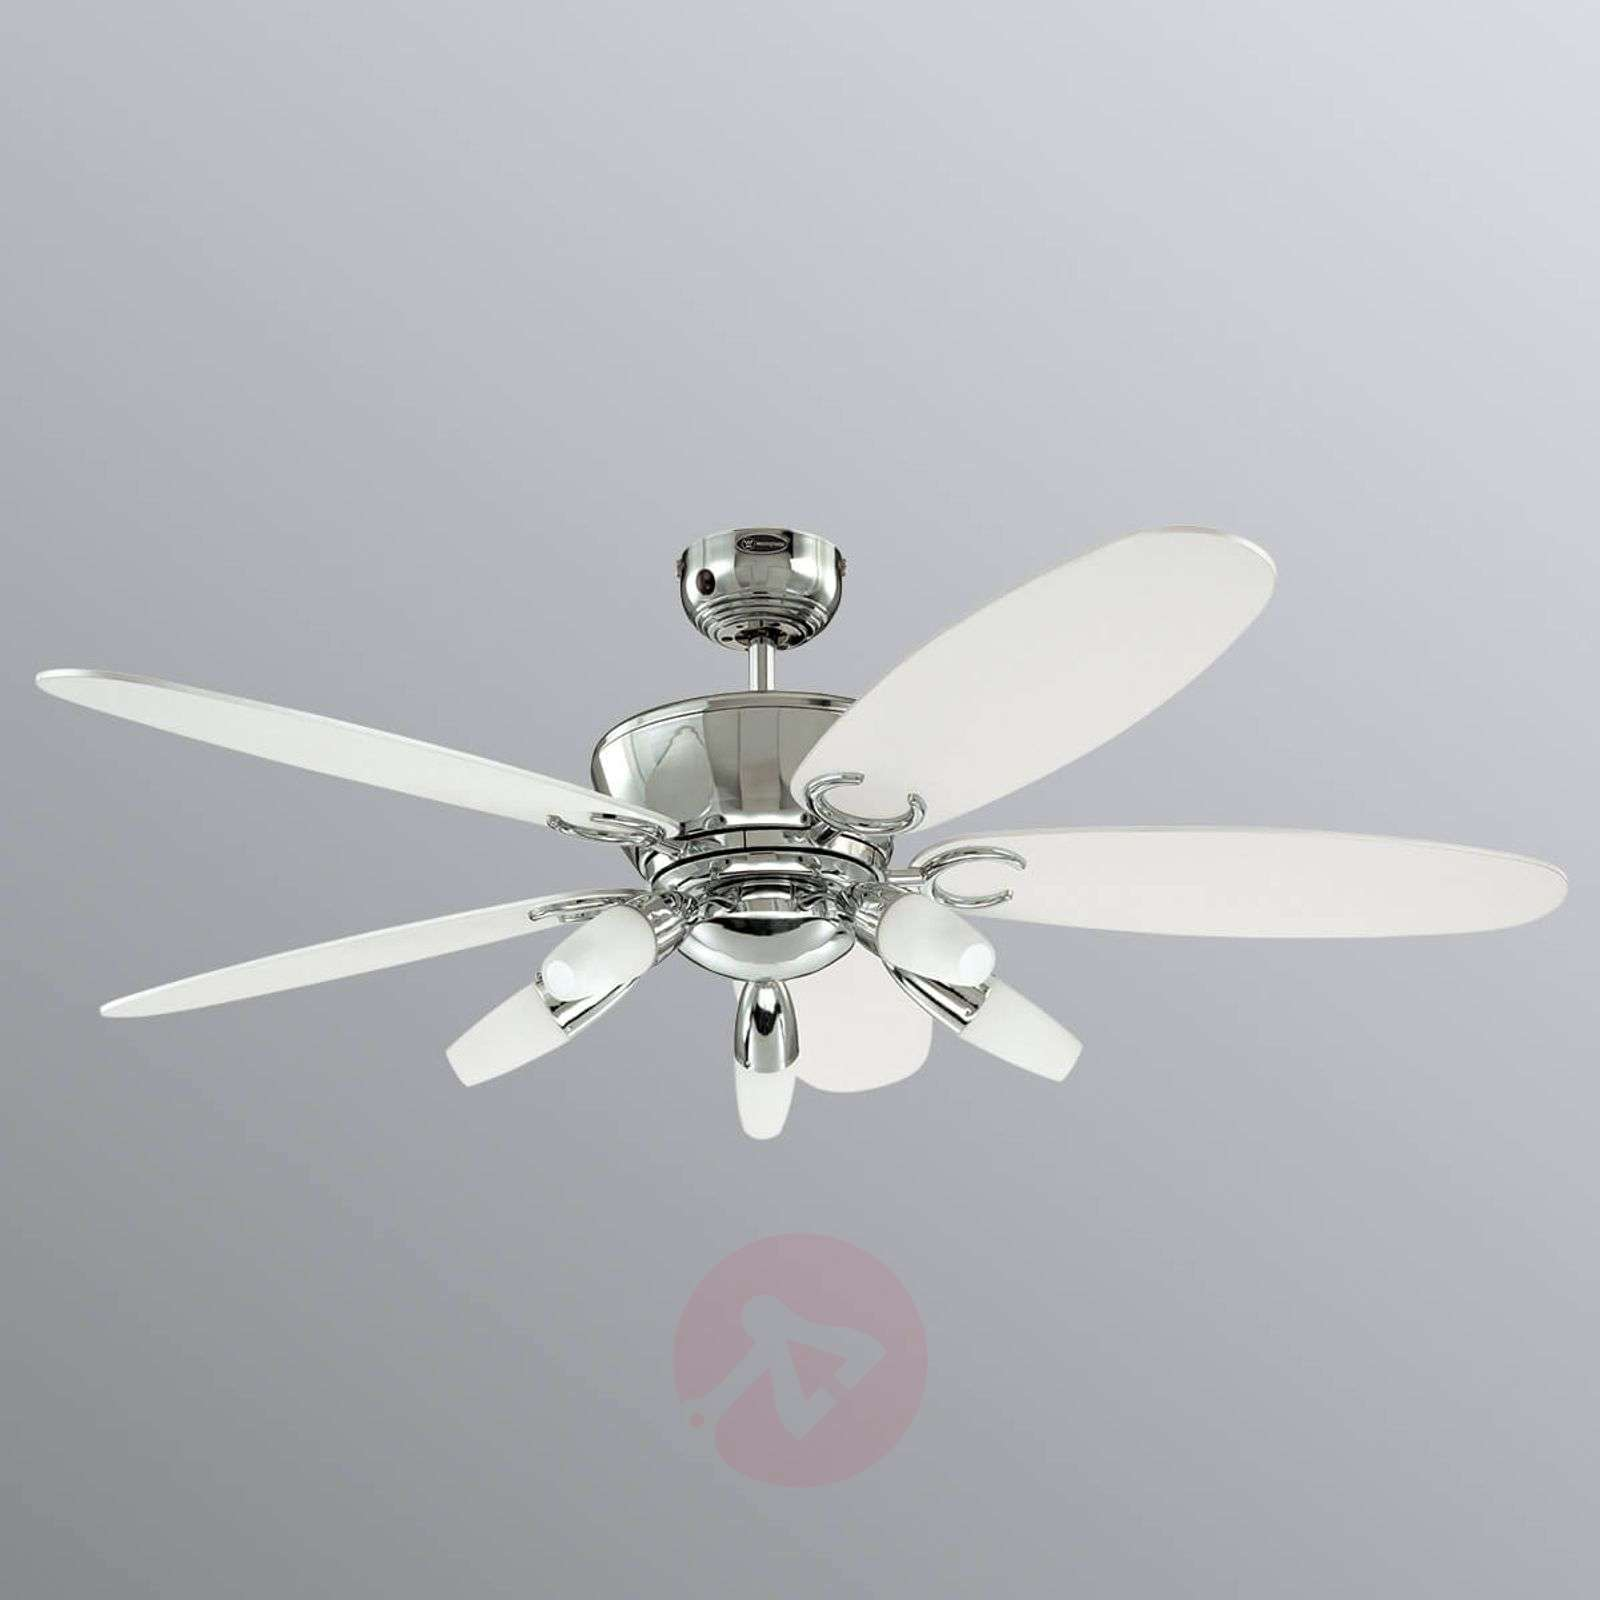 Airus ceiling fan, energy-saving, remote control-9602162-012